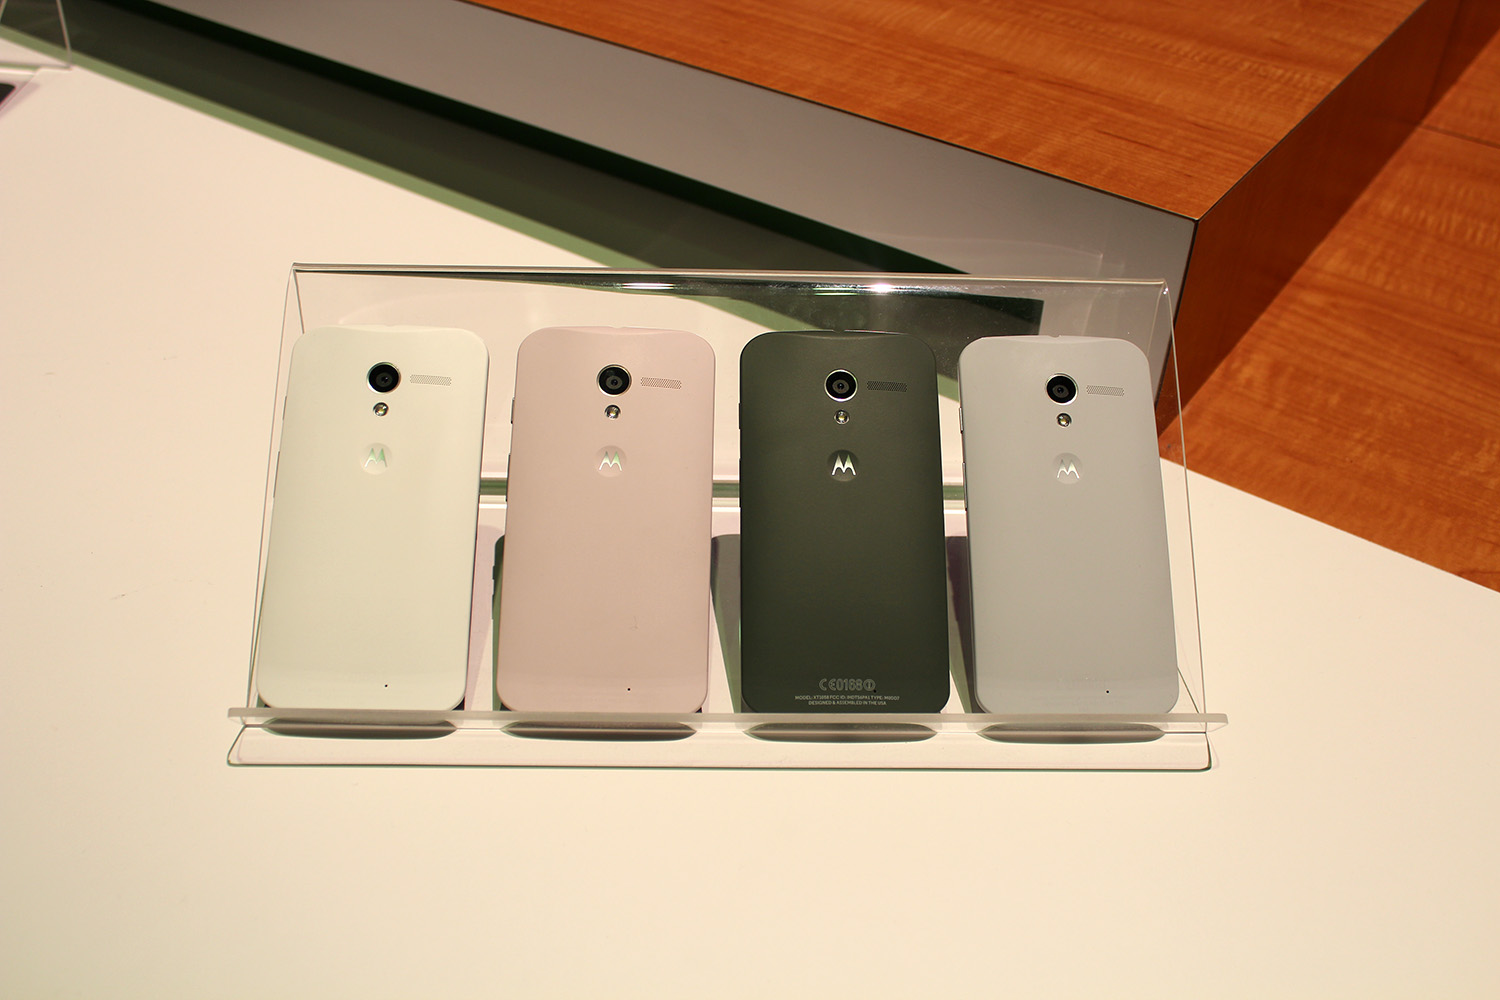 IMG 3099 Hands on with the Moto X: You wont lust after it, but its a solid smartphone